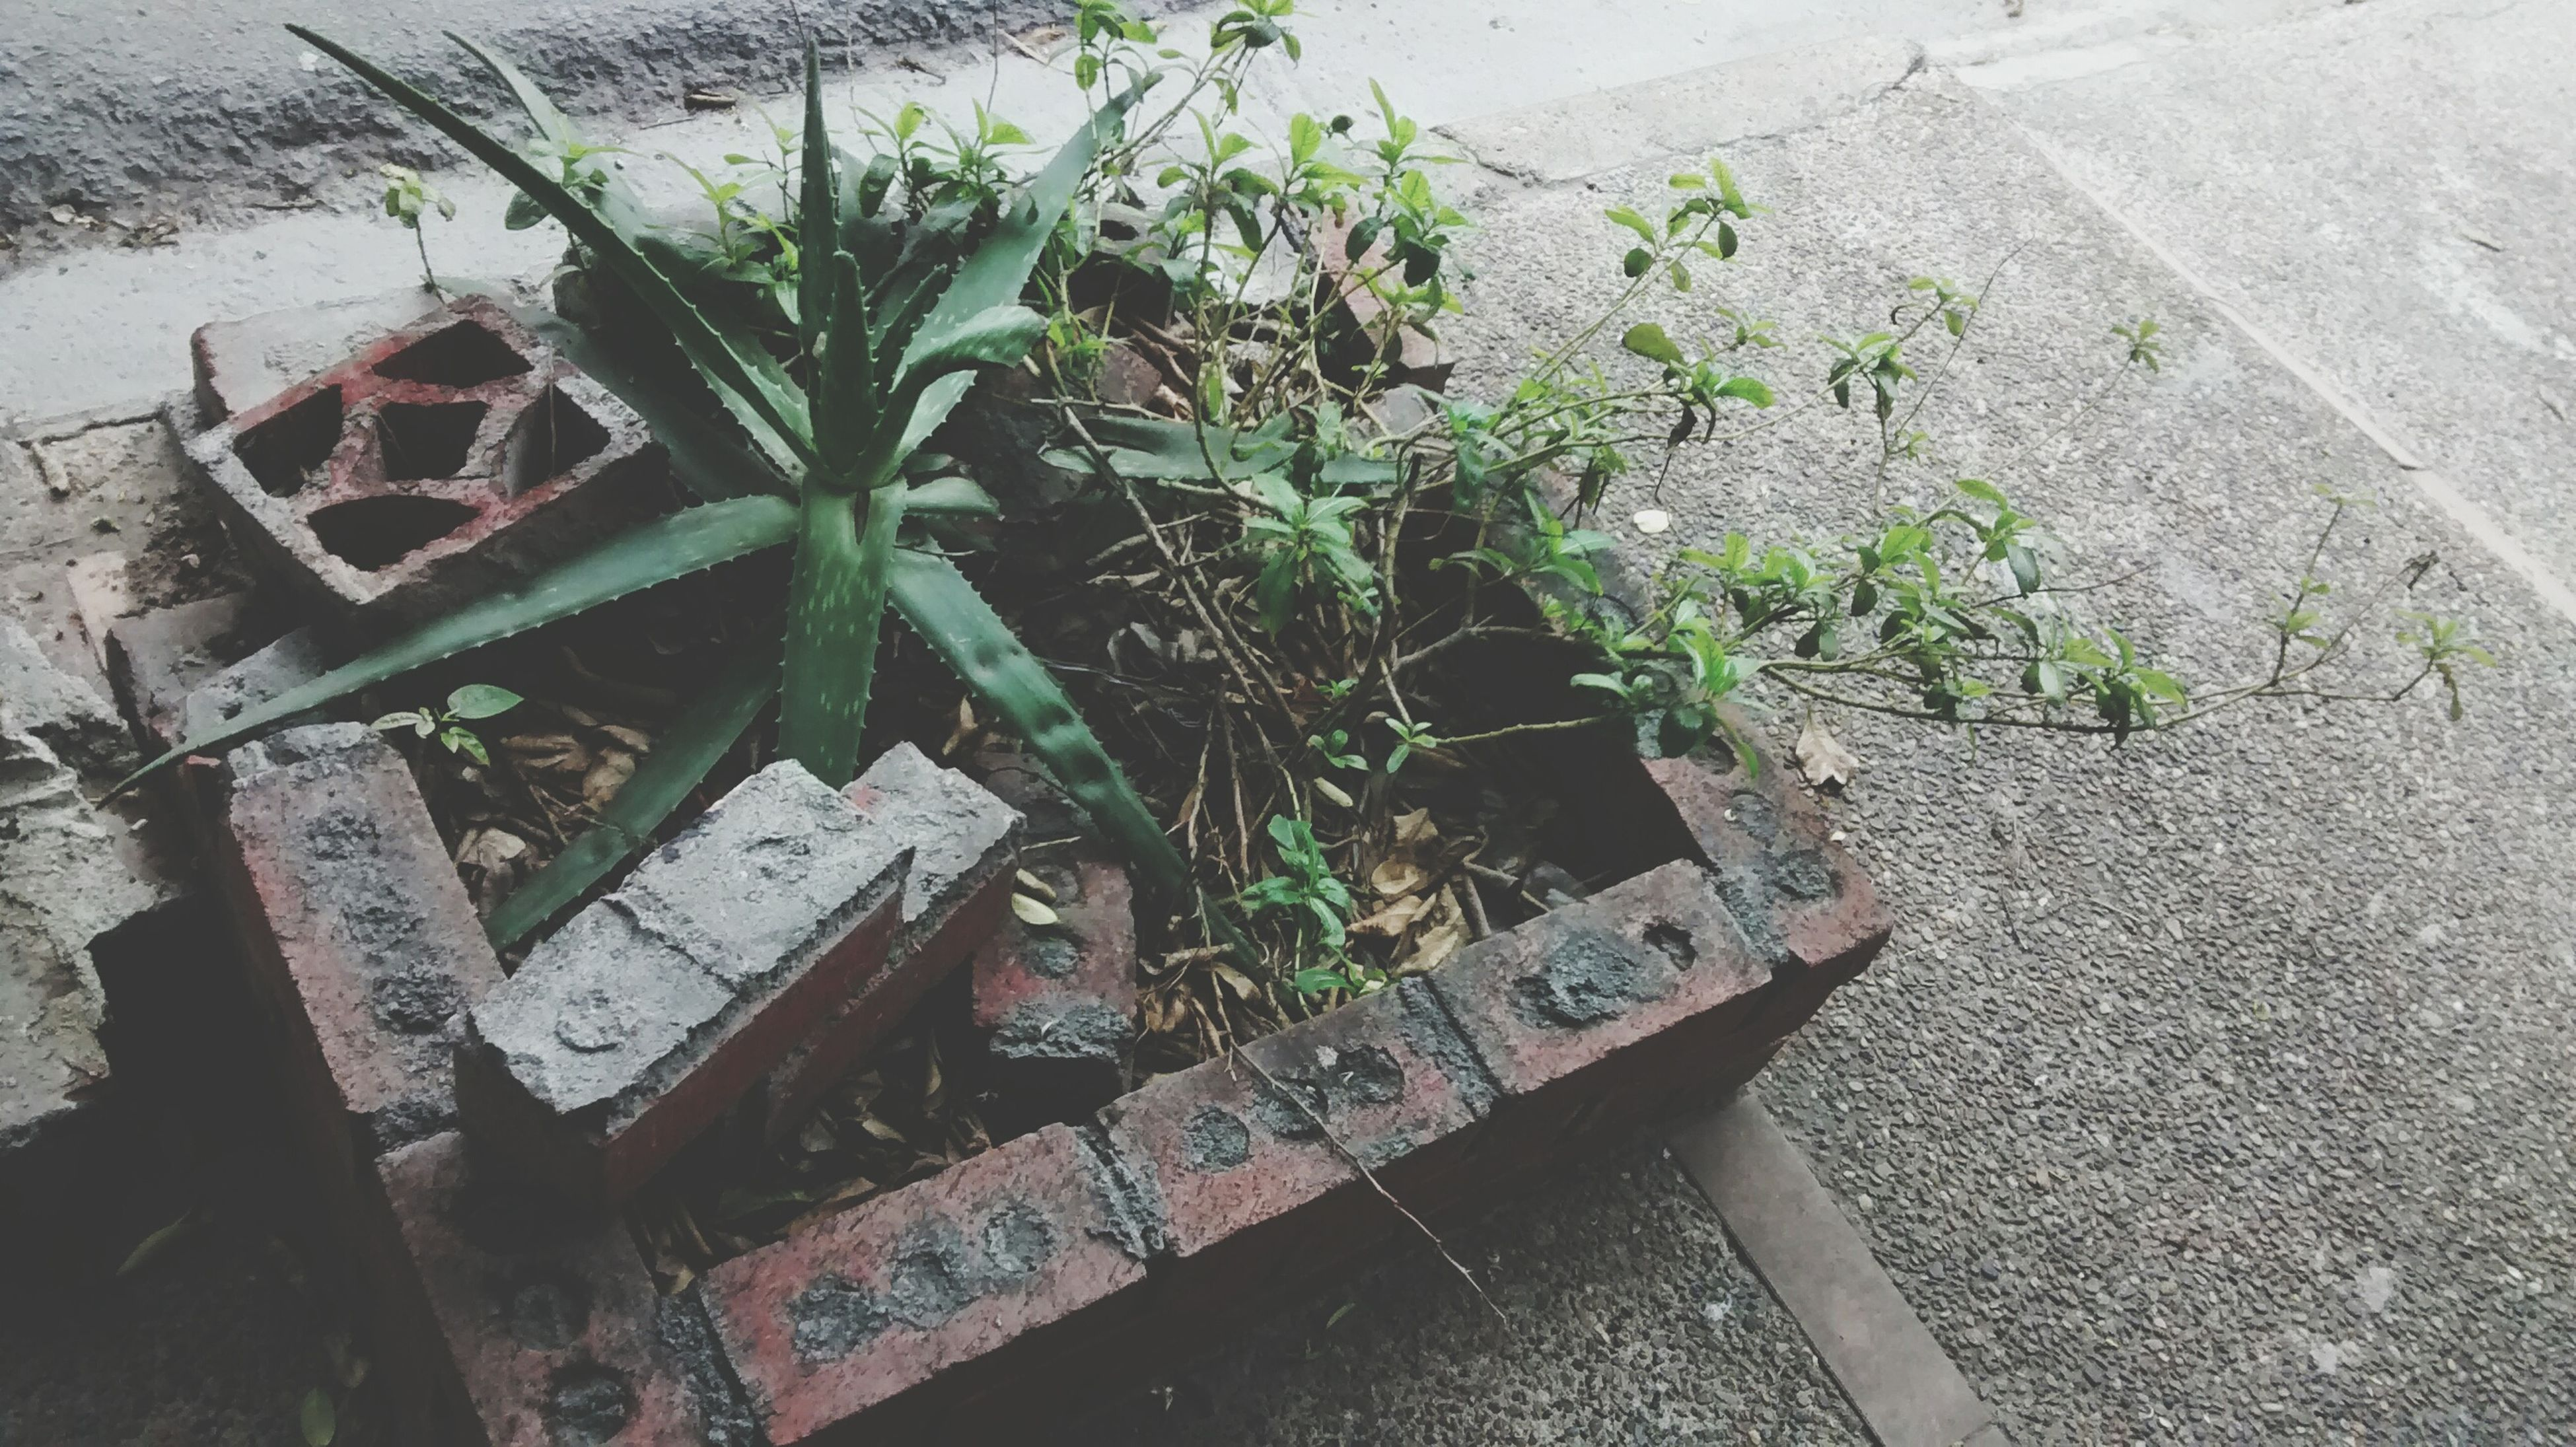 growth, plant, high angle view, leaf, outdoors, potted plant, no people, day, nature, gutter, close-up